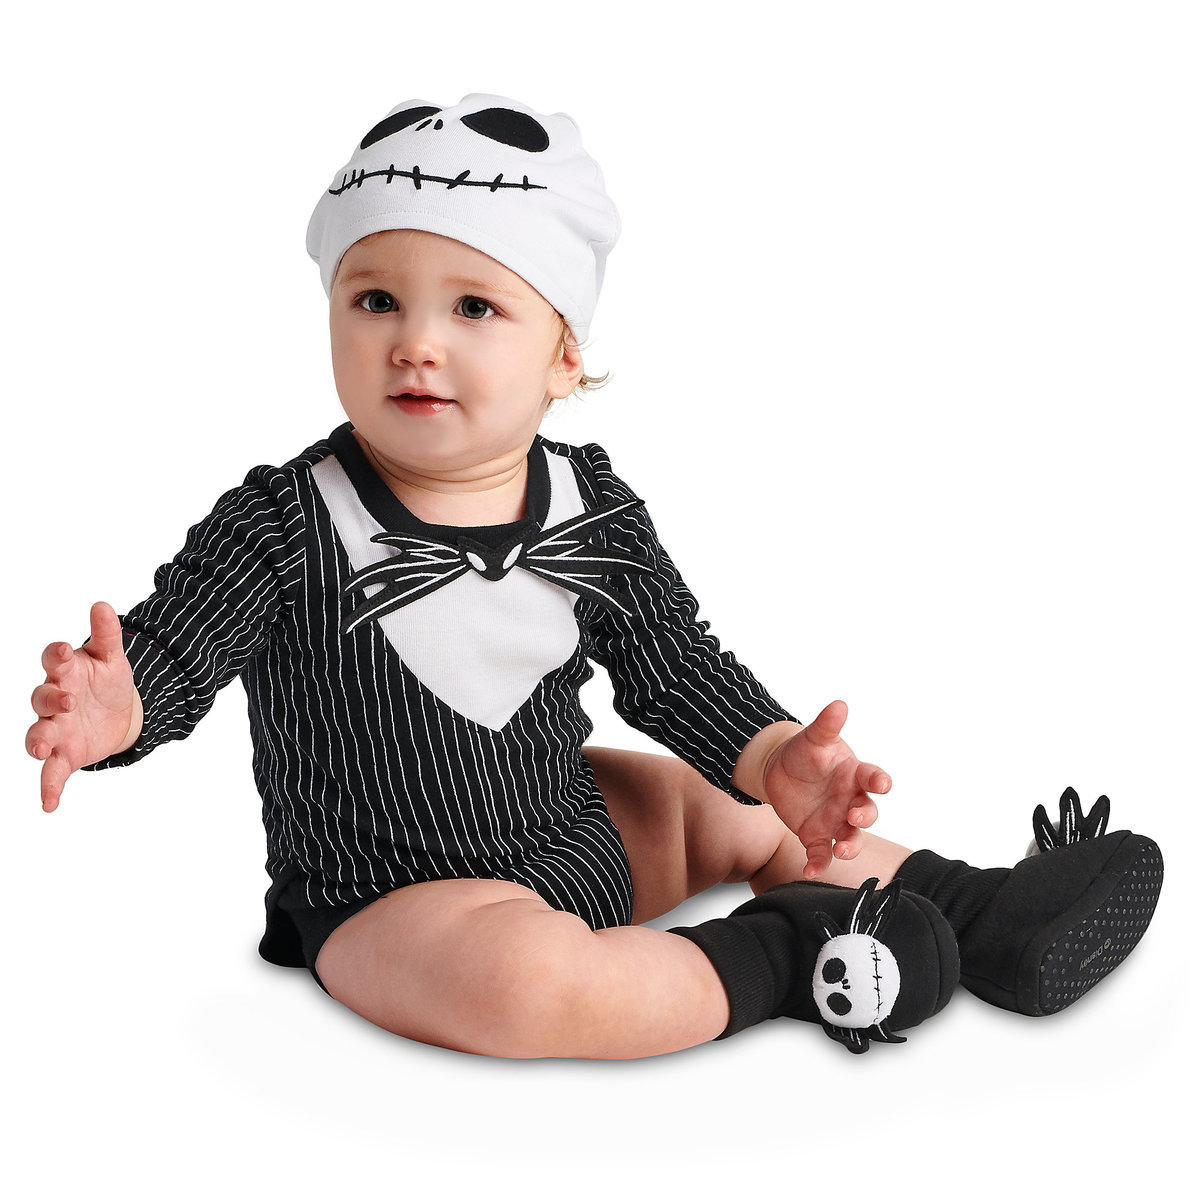 deb17f308 Product Image of Jack Skellington Costume Collection for Baby # 1